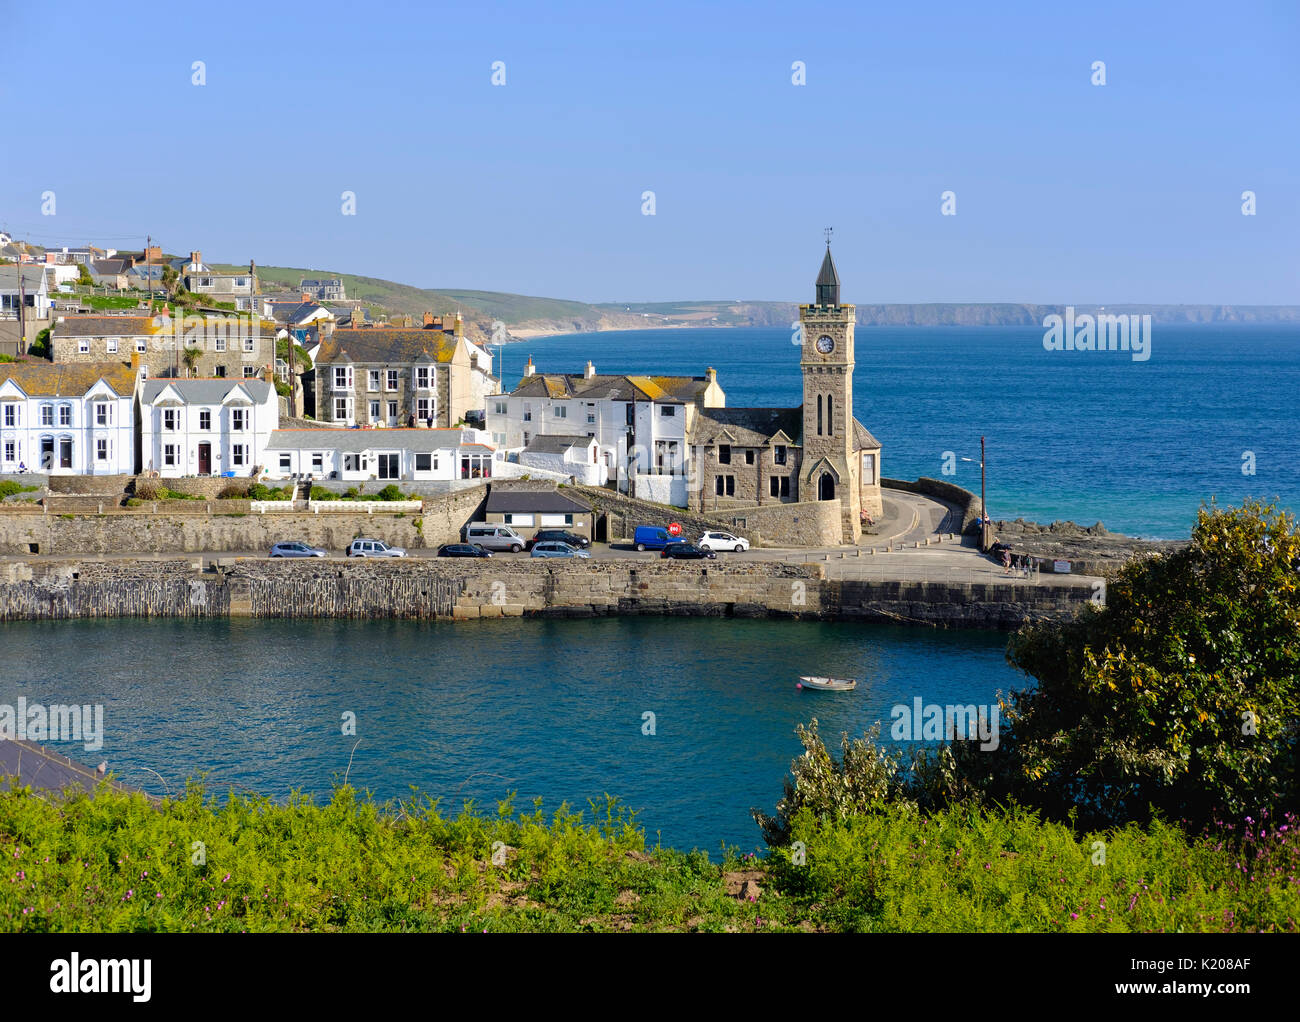 Porthleven Town Council, Porthleven, Cornwall, England, United Kingdom - Stock Image